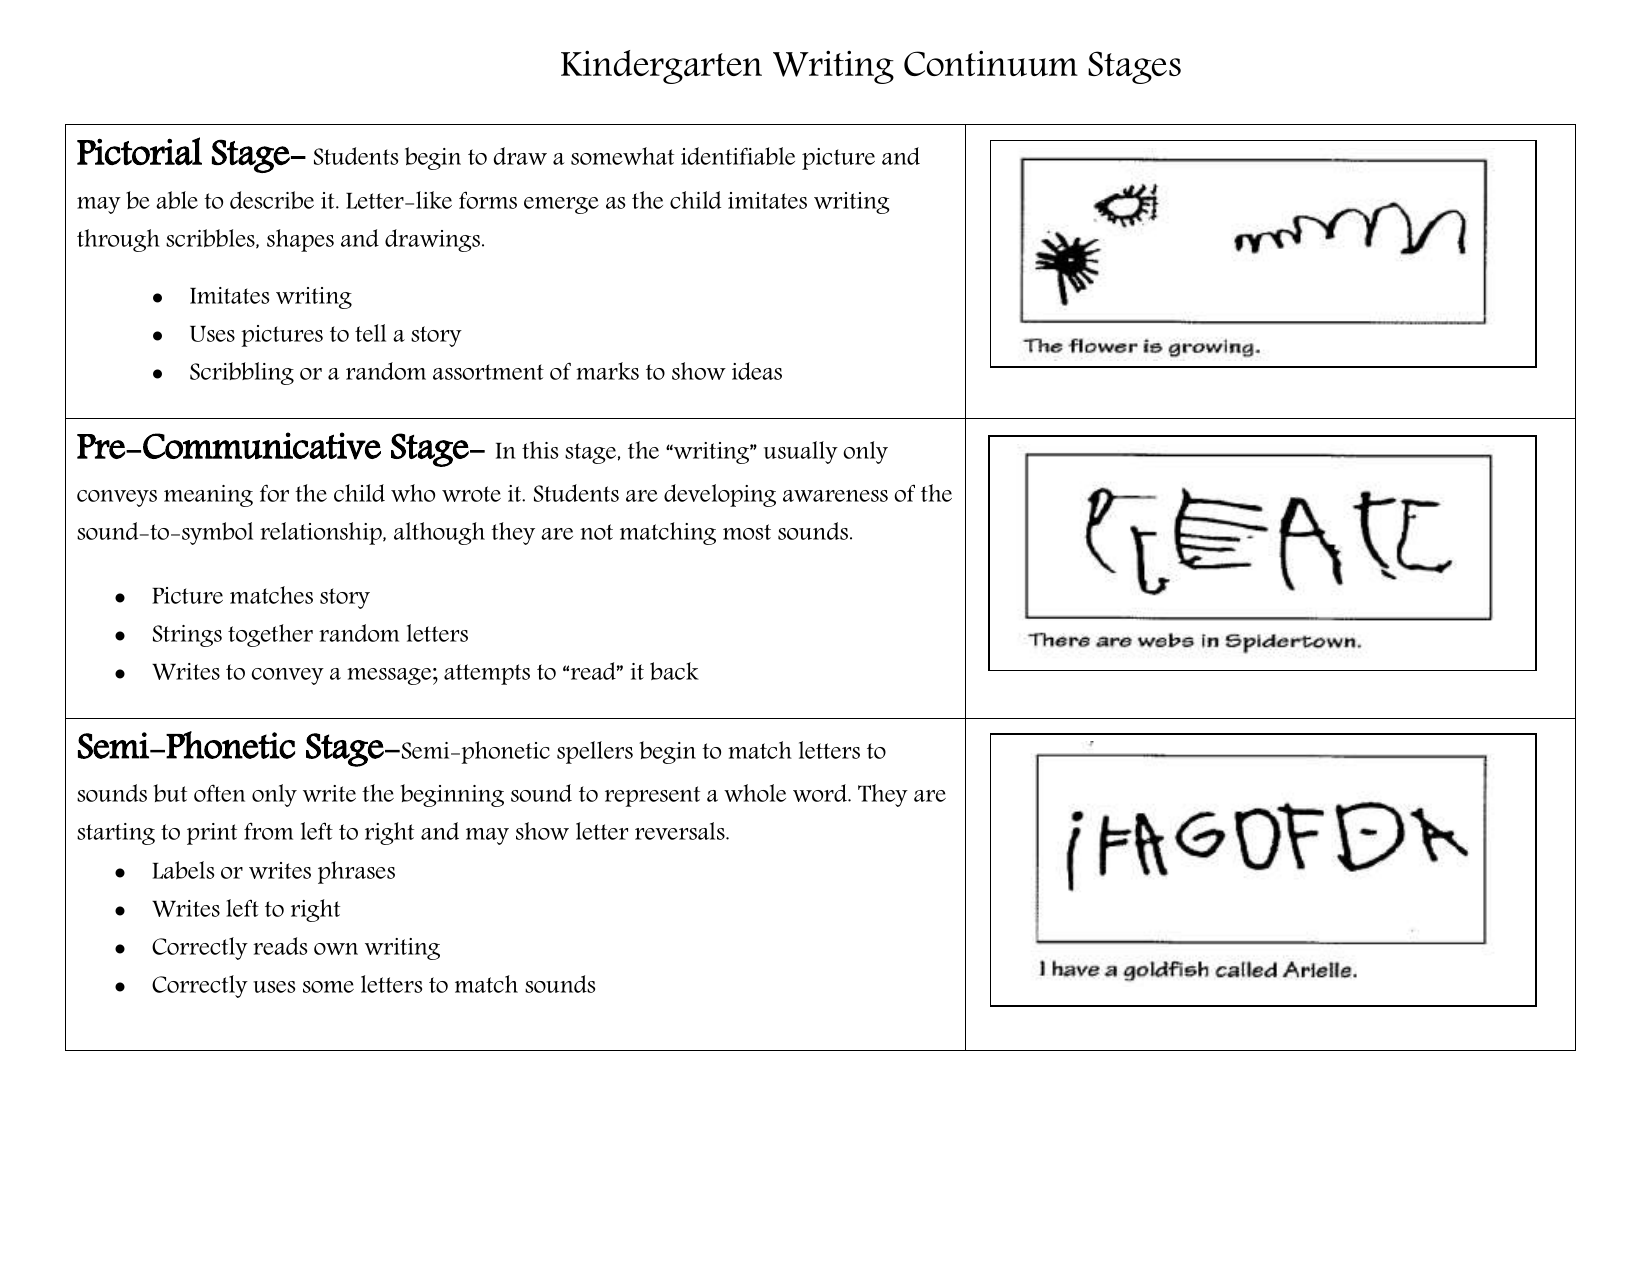 Kindergarten Writing Continuum | Kindergarten Writing